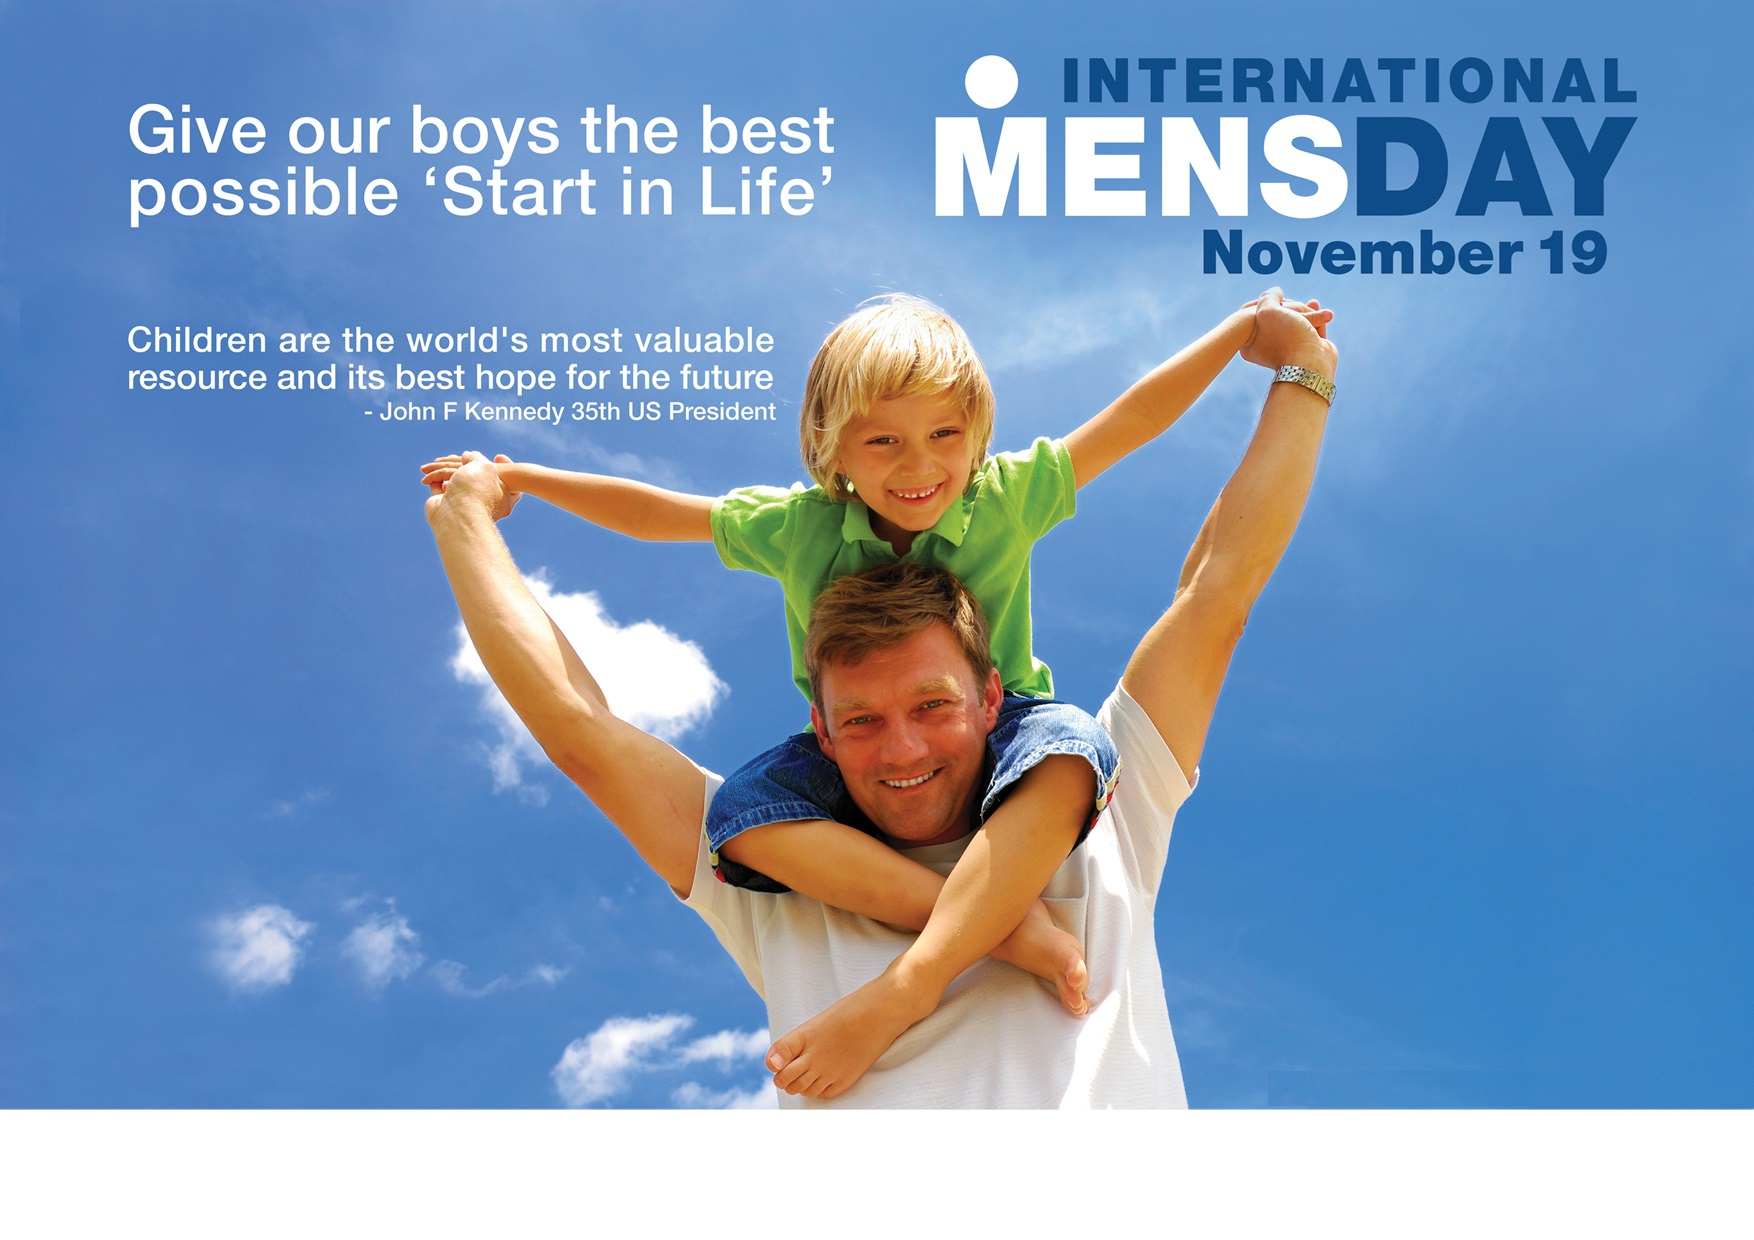 International Men's Day Photos